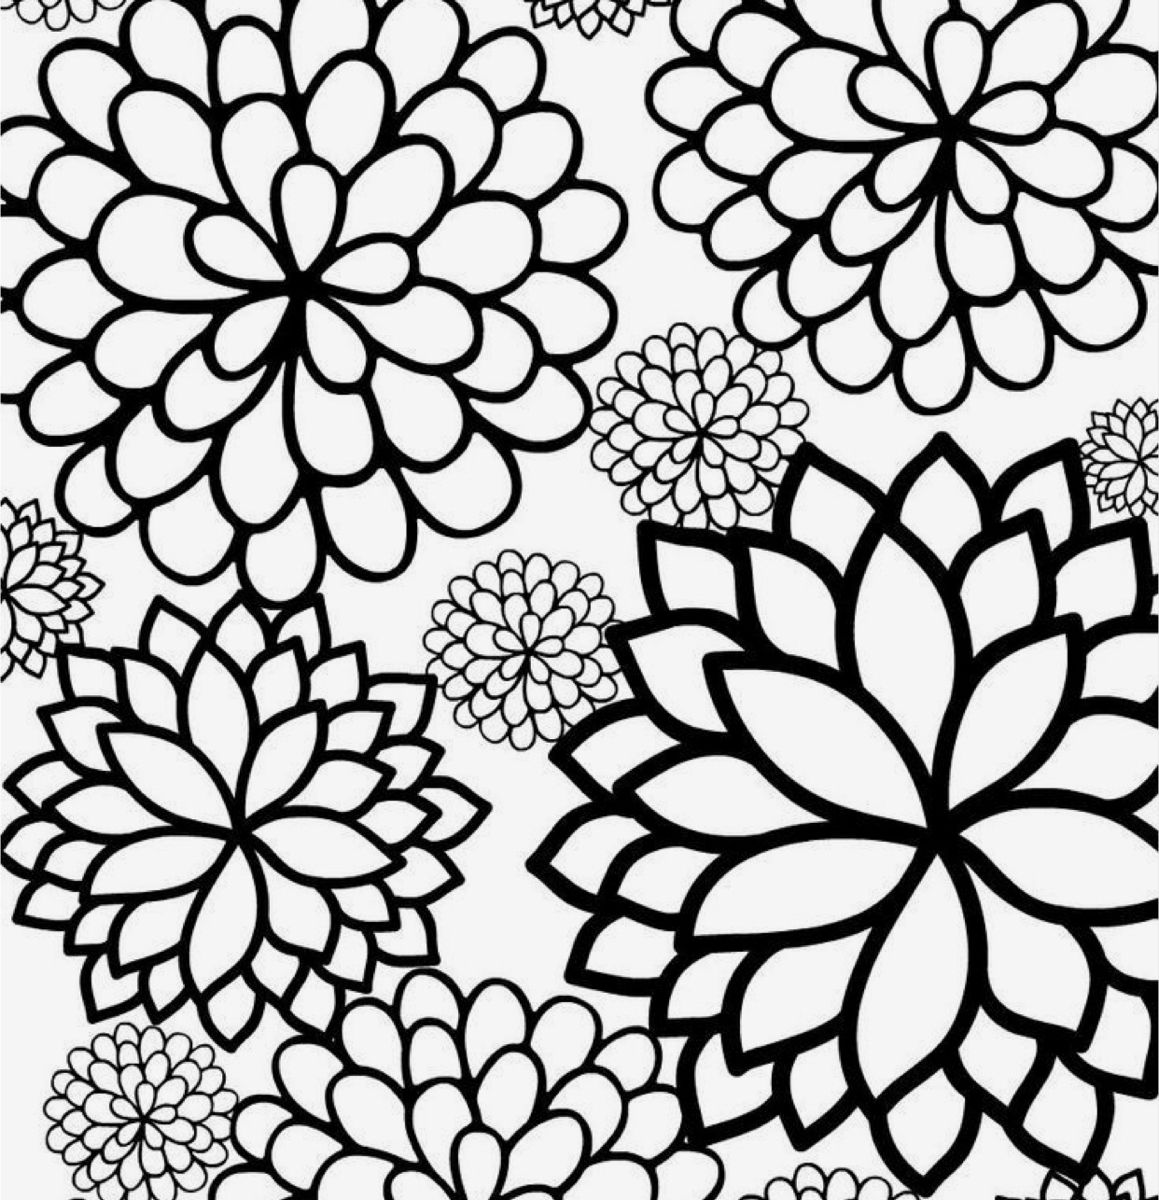 Bursting Blossoms Flower Coloring Page Printable Flower Coloring Pages Flower Coloring Pages Mandala Coloring Pages